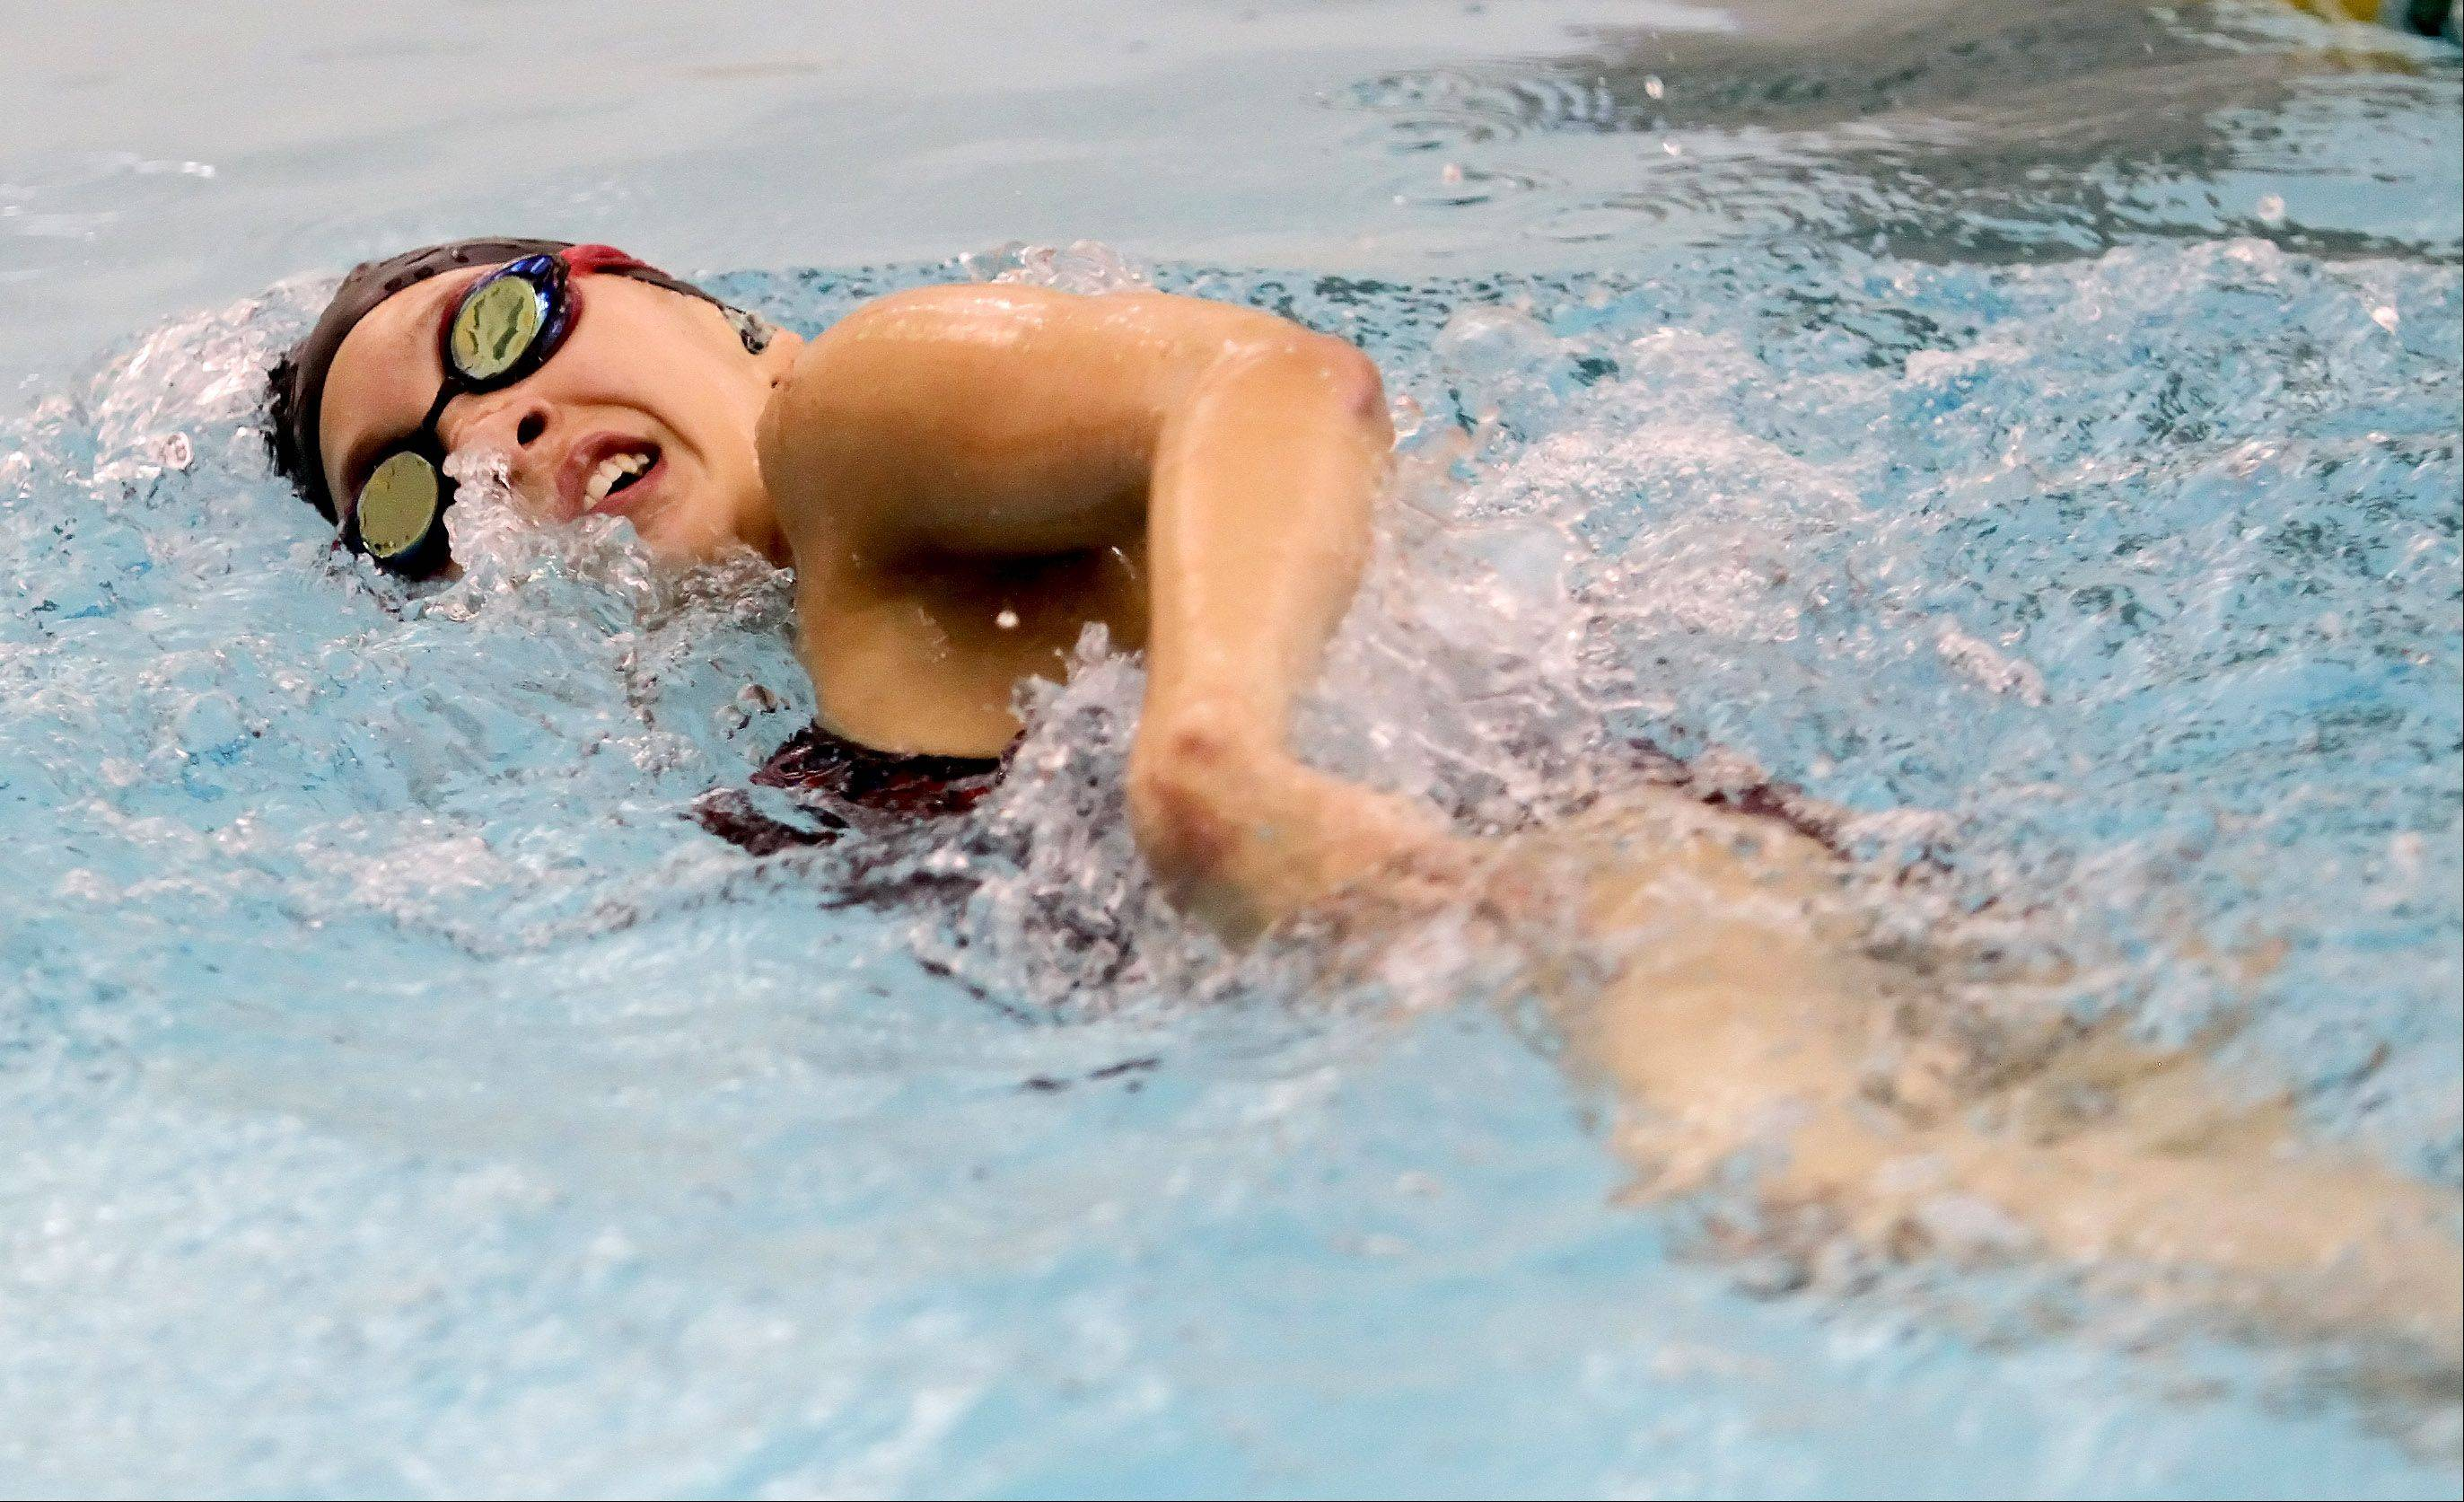 Alyssa Gialamas of Naperville trains daily at the Waubonsie Valley High School pool. She will be competing in this year's Paralympic Games in London.